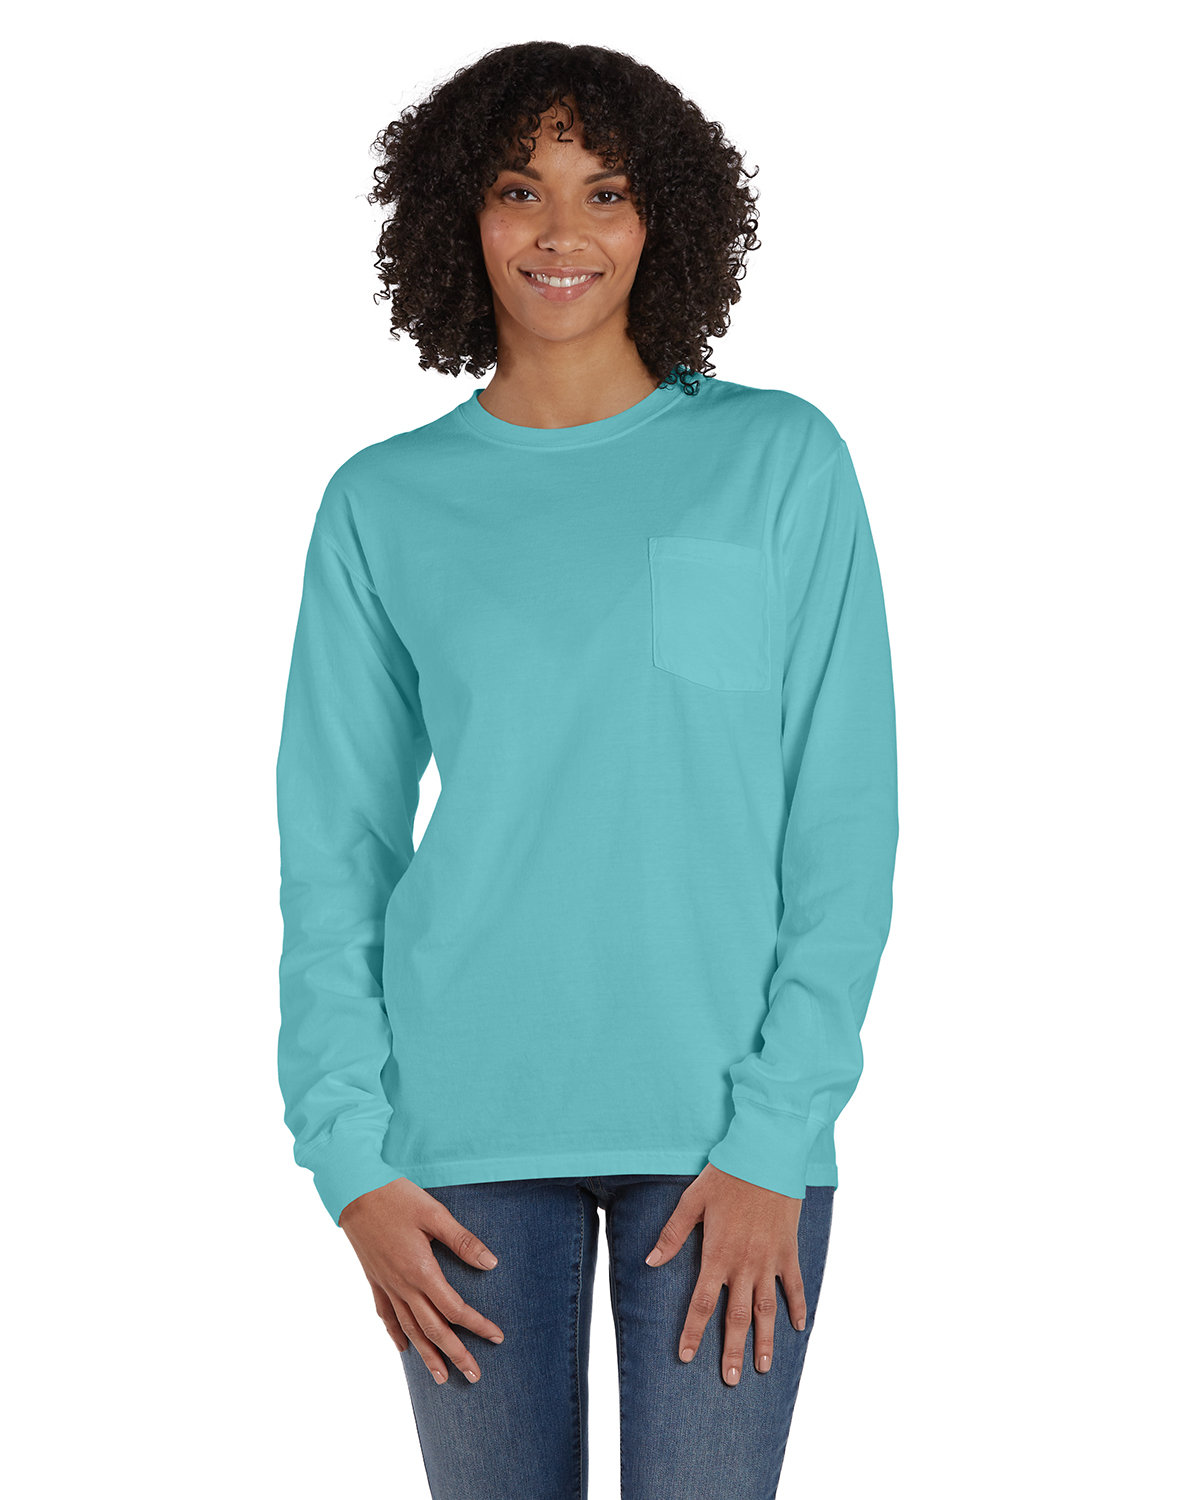 ComfortWash by Hanes Unisex Garment-Dyed Long-Sleeve T-Shirt with Pocket MINT